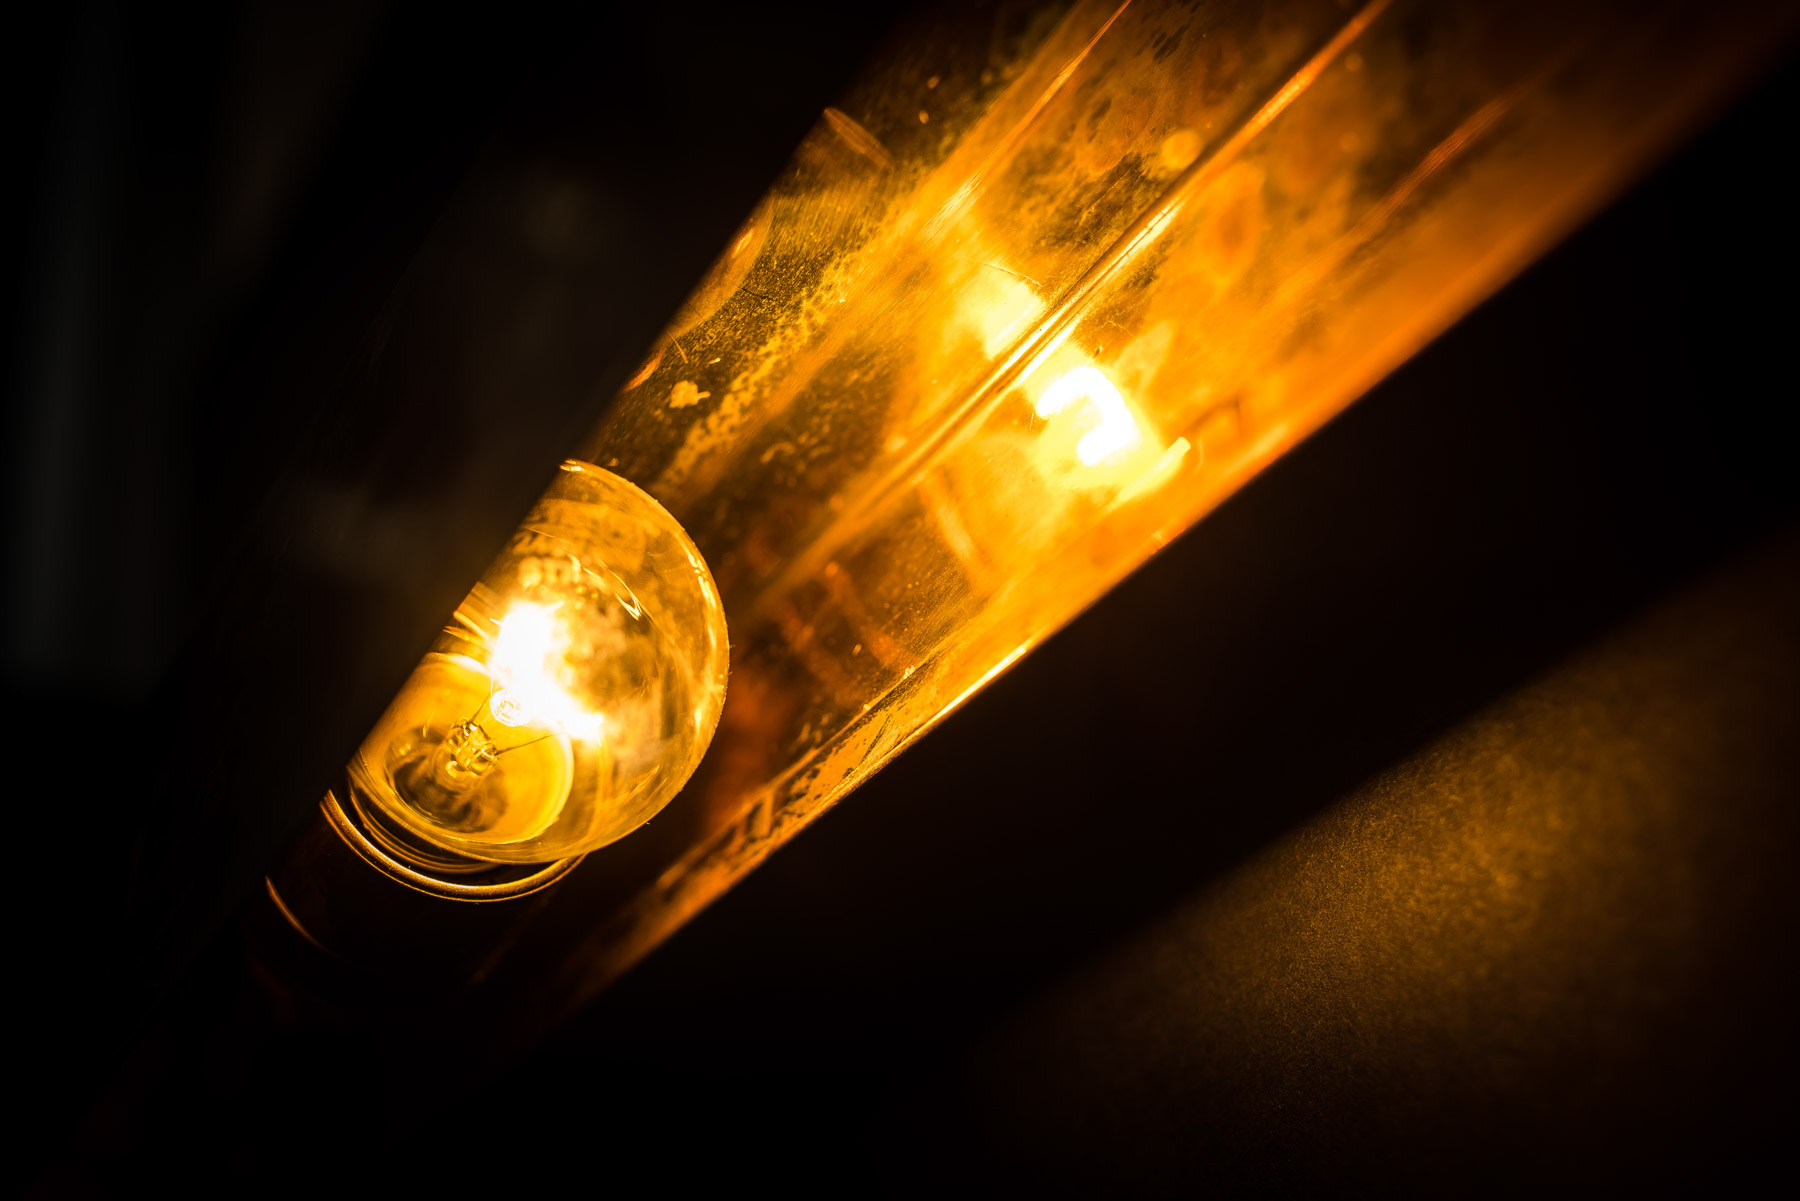 Metre long brass wall light 07.jpg